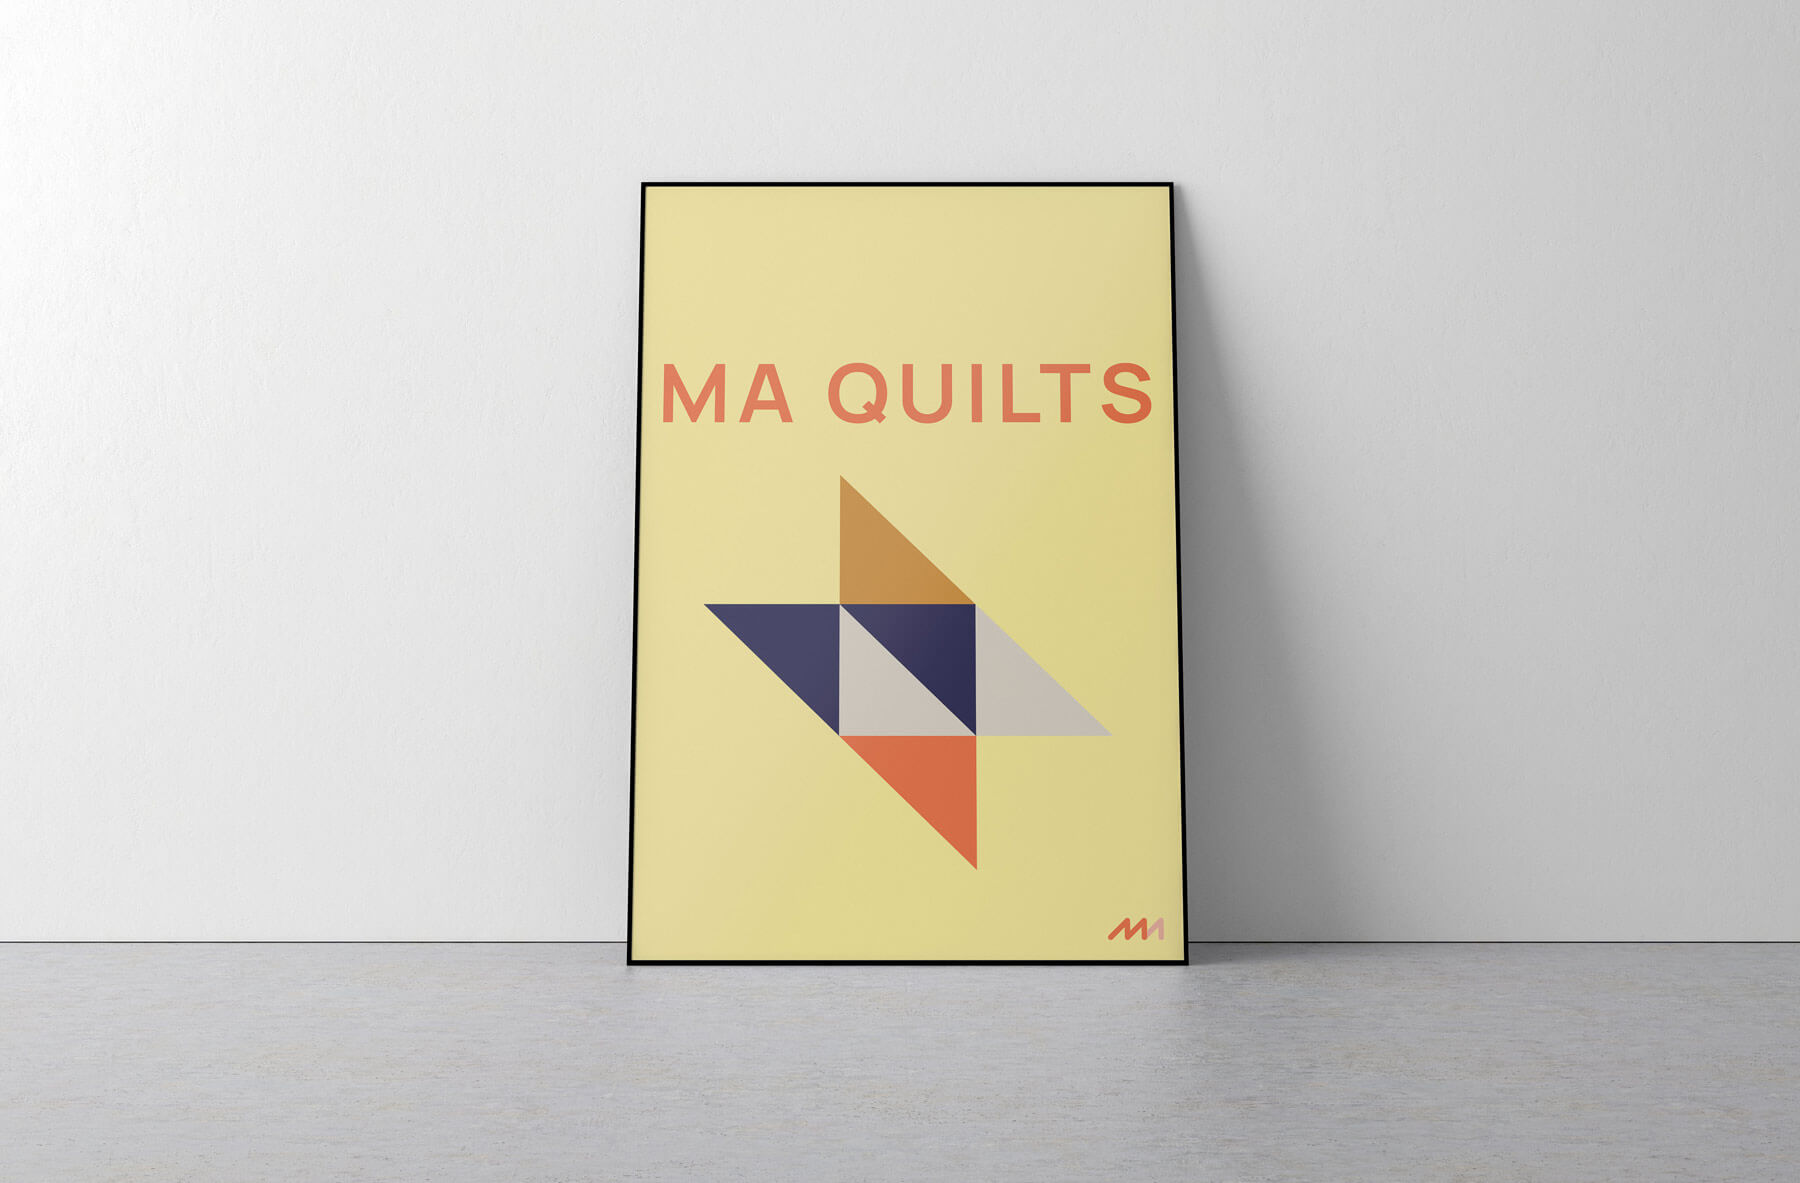 MA quilts poster